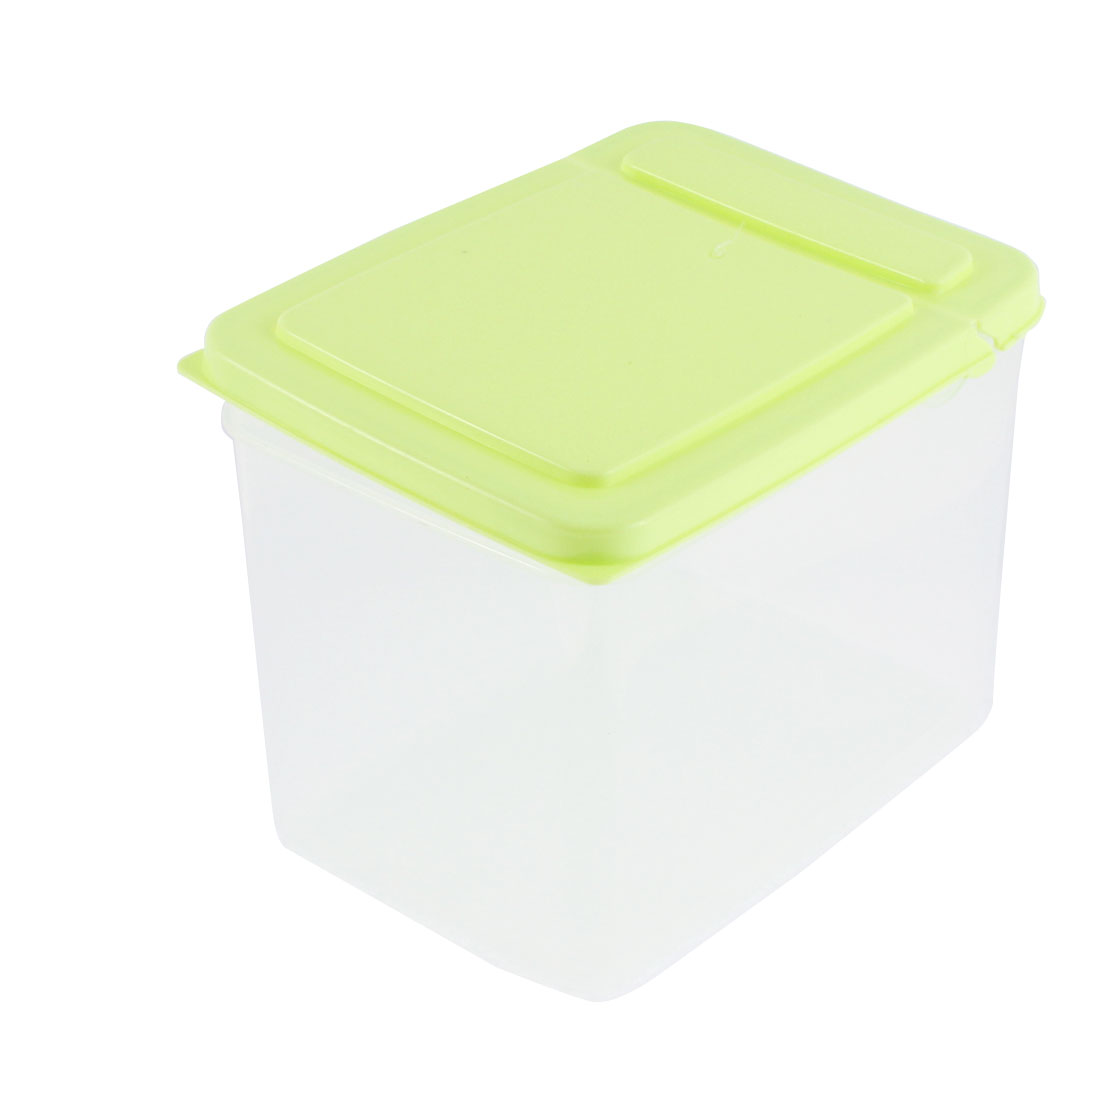 Household Plastic Food Storage Box Container Case 4 Inch Height 1.3L Green